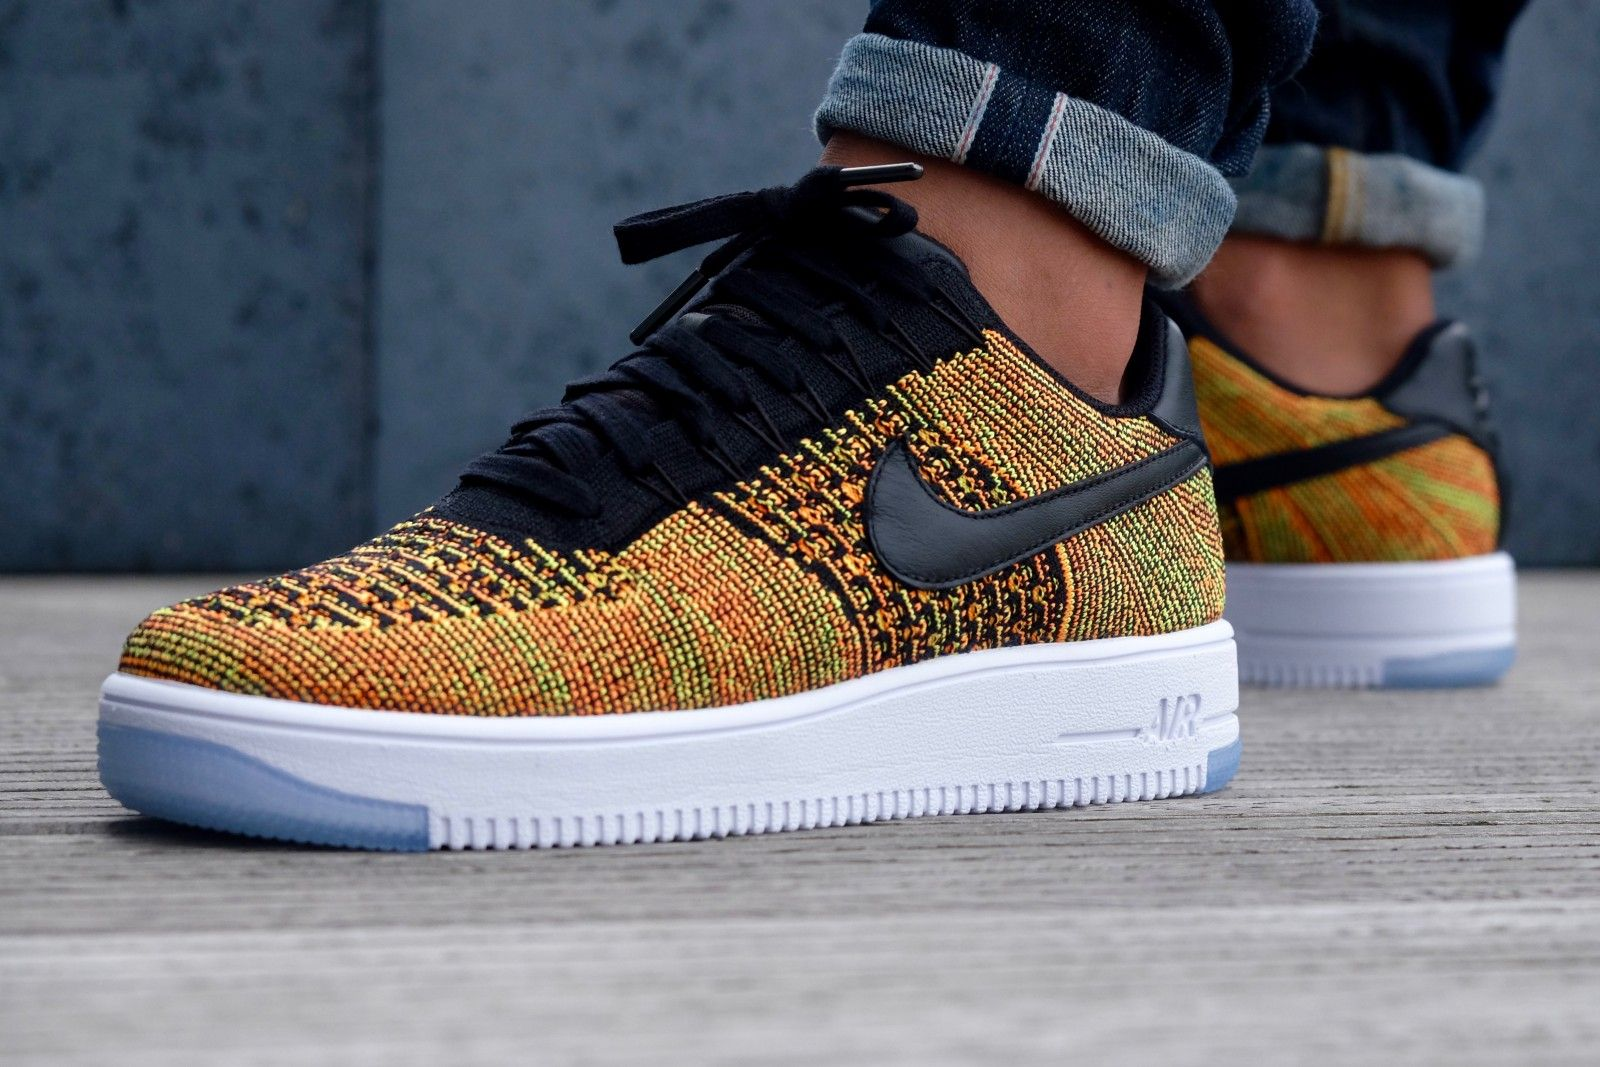 Nike Air Force 1 Ultra Flyknit Low Volt Black Orange